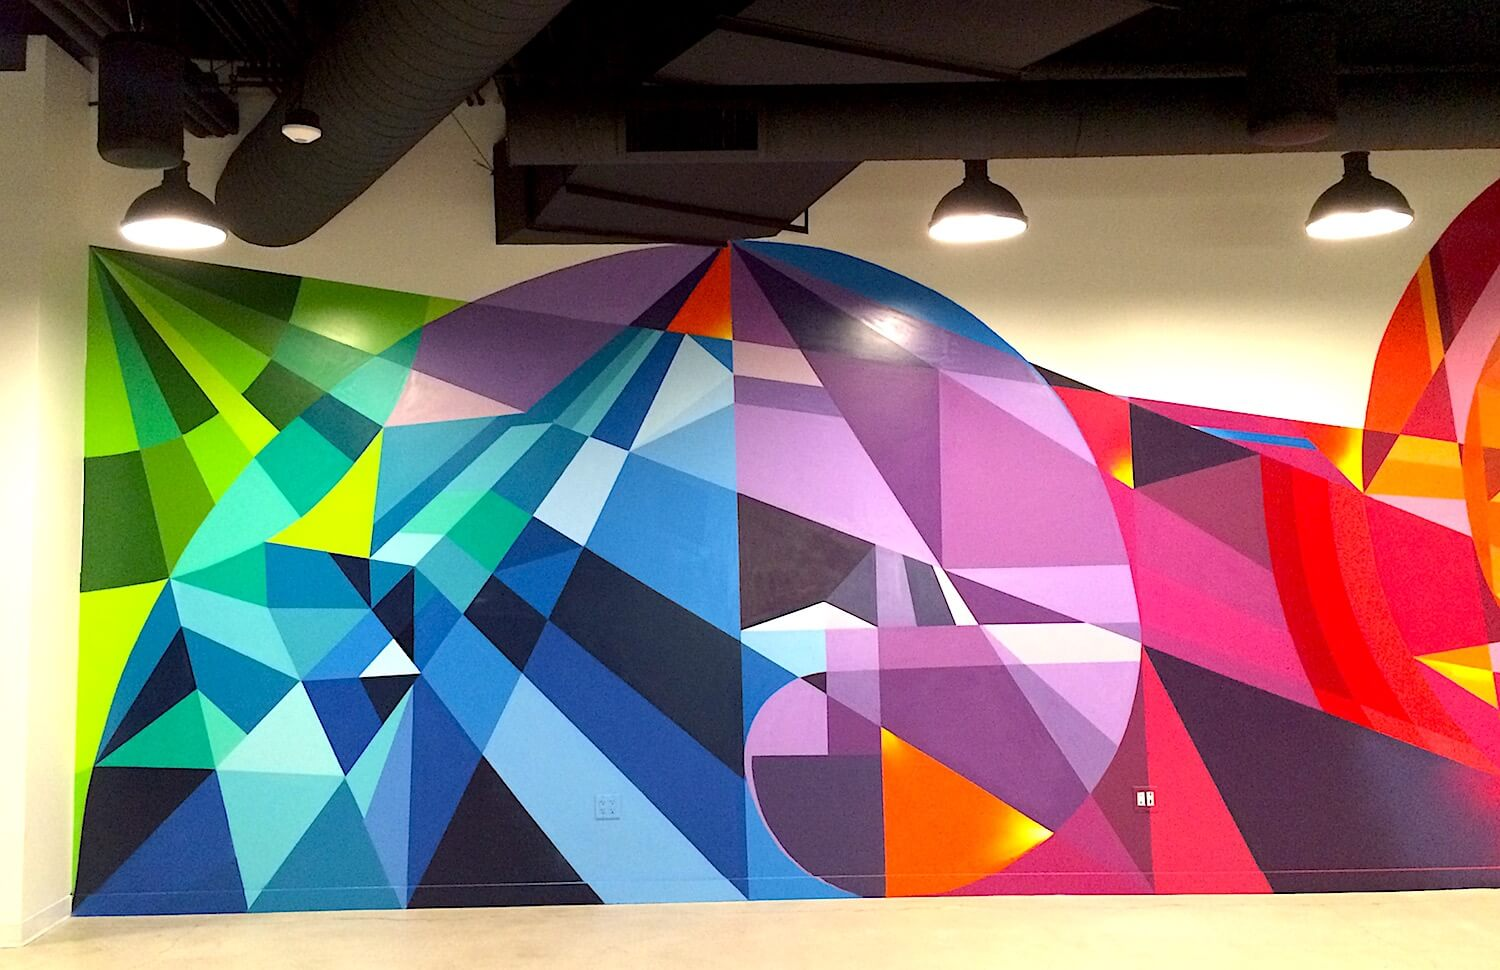 Commissioned Interior Mural 5 for EndemolShine | Los Angeles USA, 2016